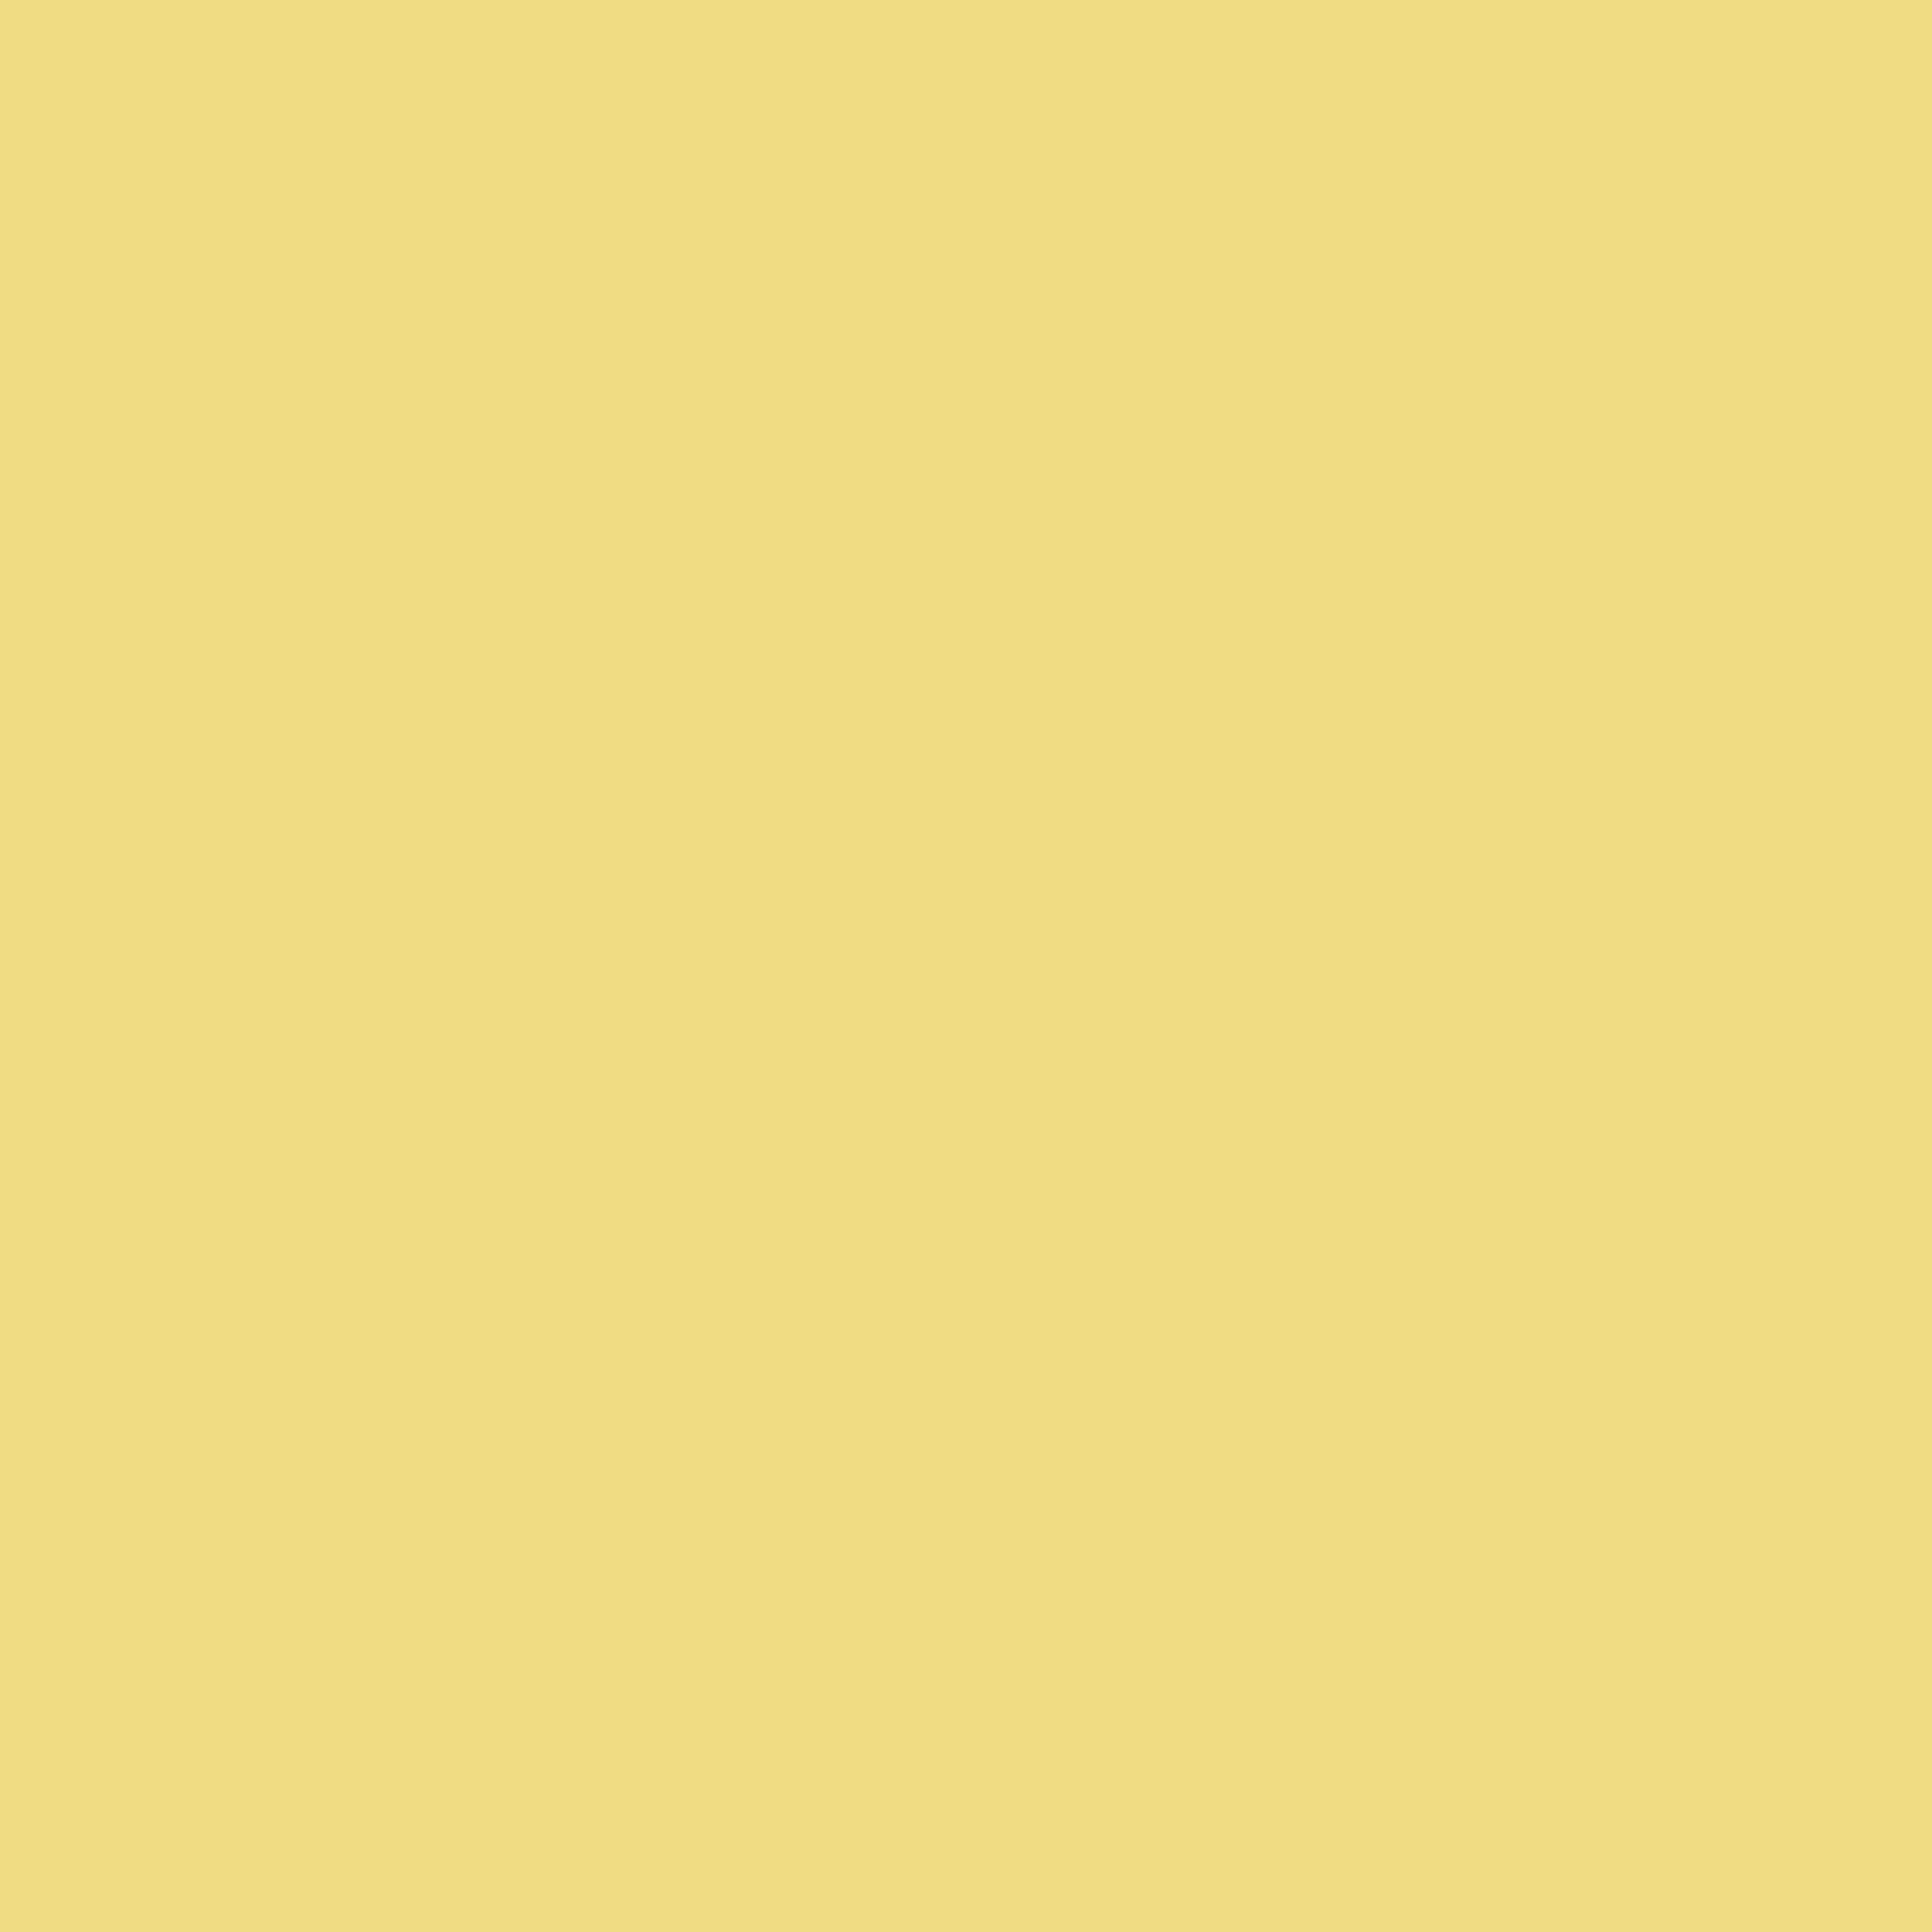 2048x2048 Buff Solid Color Background